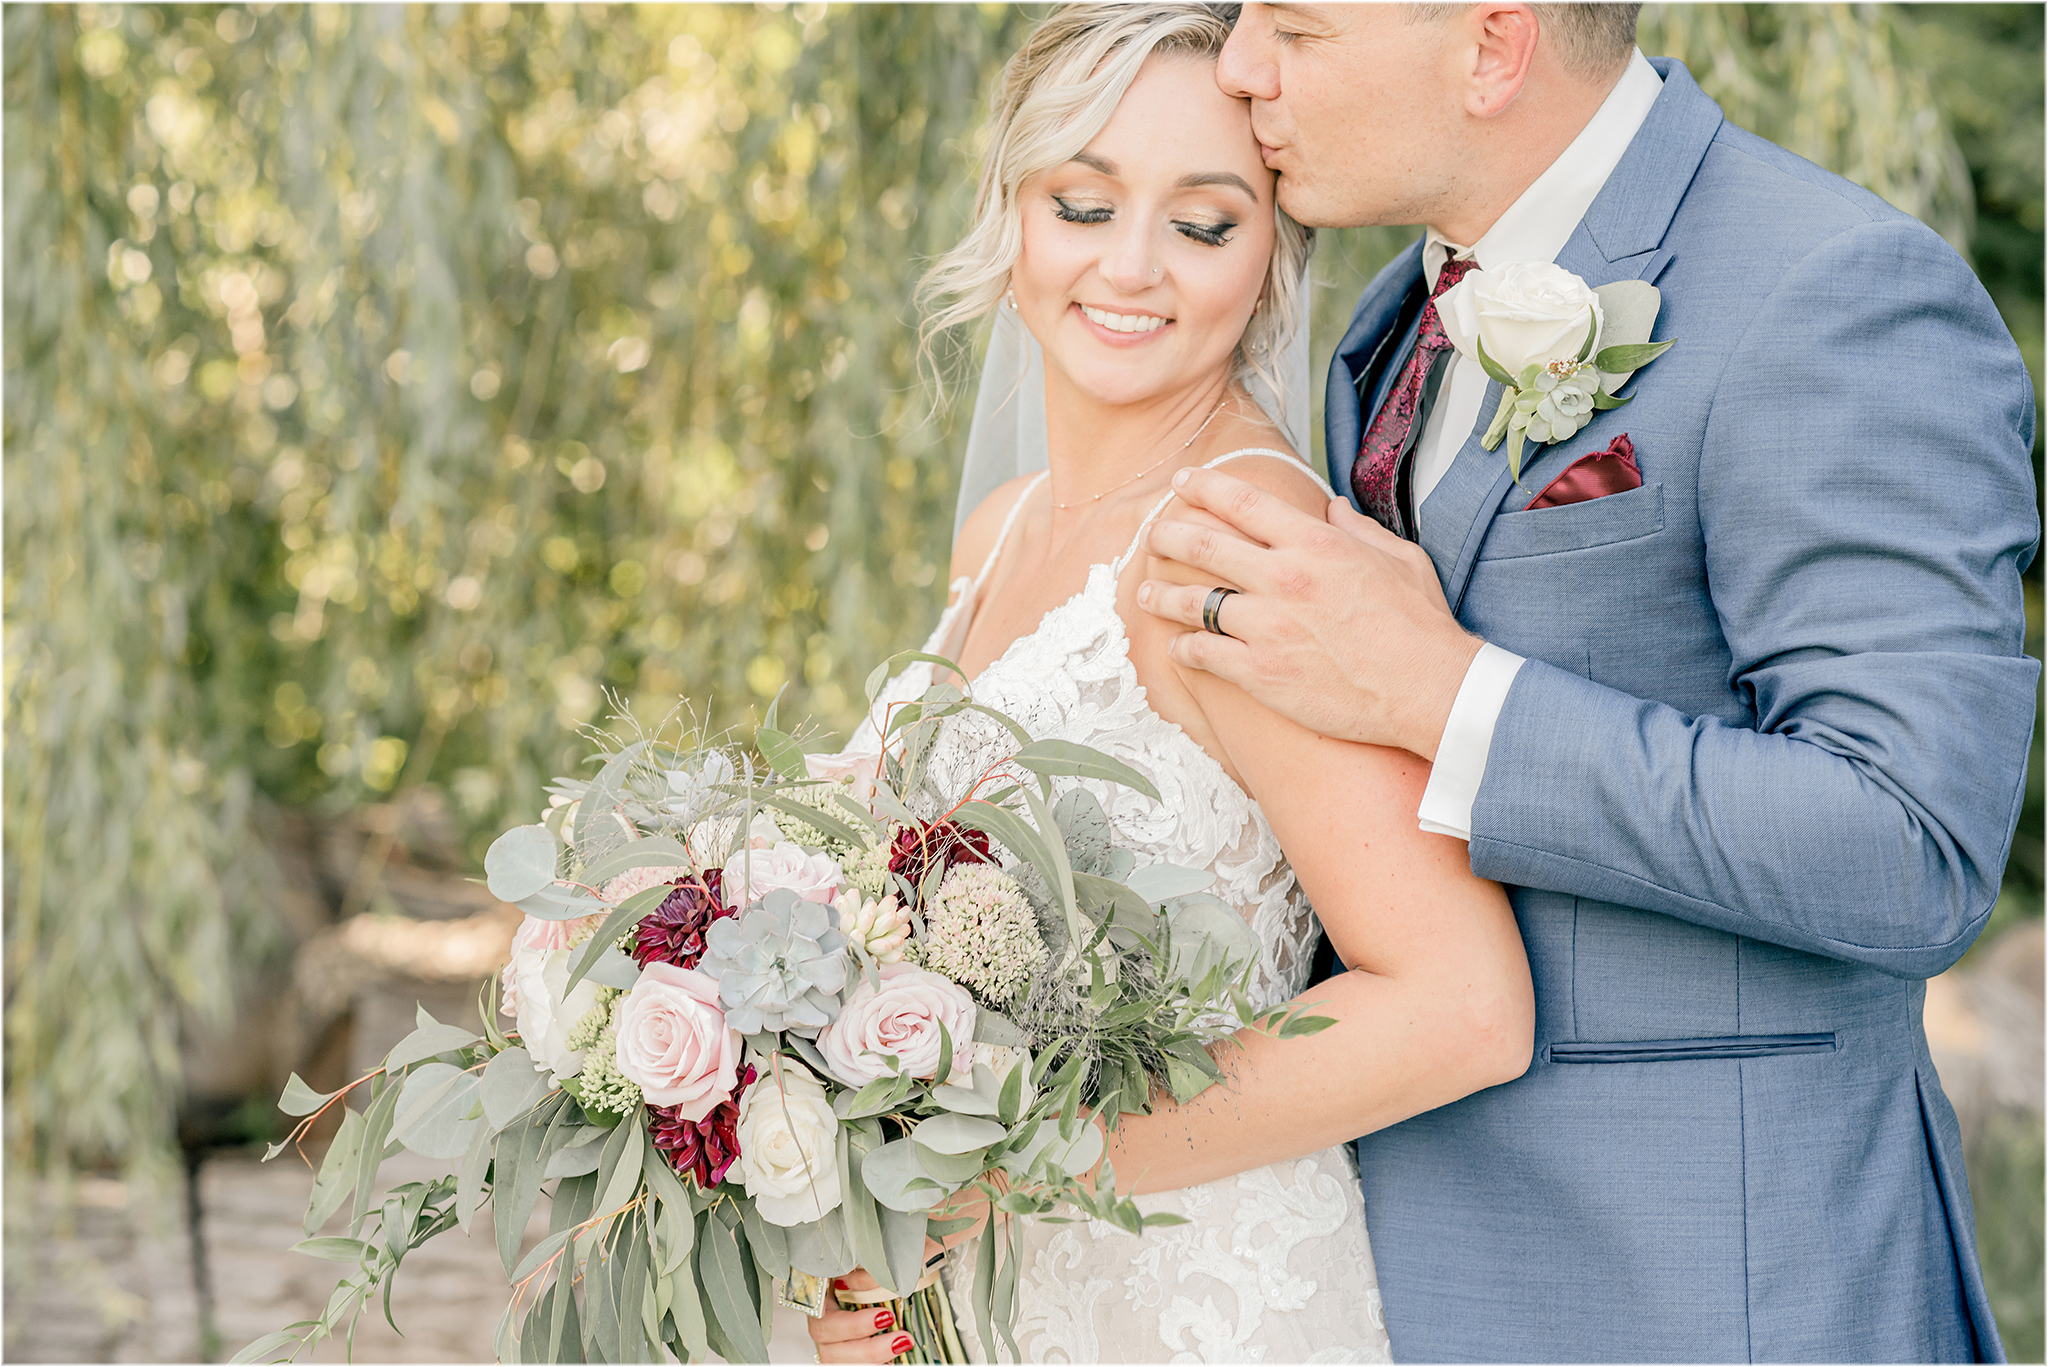 Lindsay-Adkins-Photography-Top10BridalBouquets2019-11